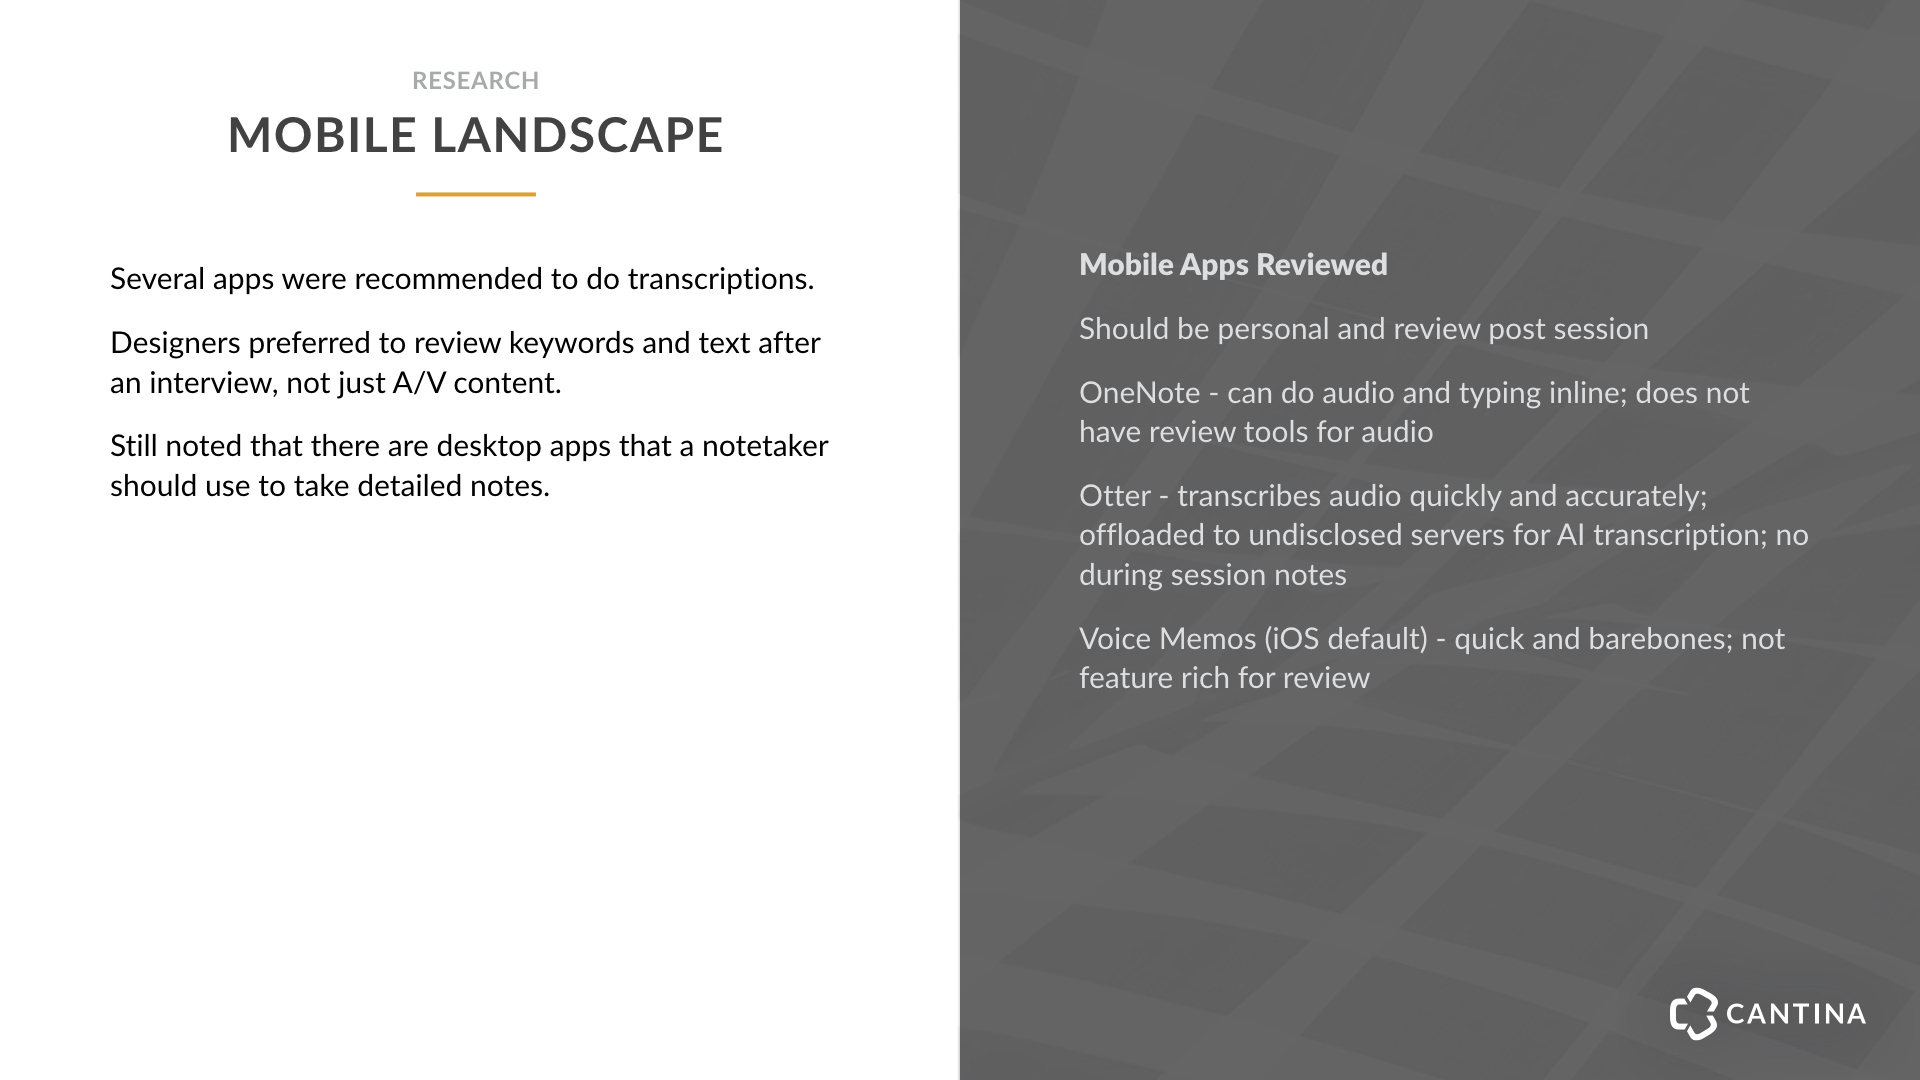 mobile landscape research